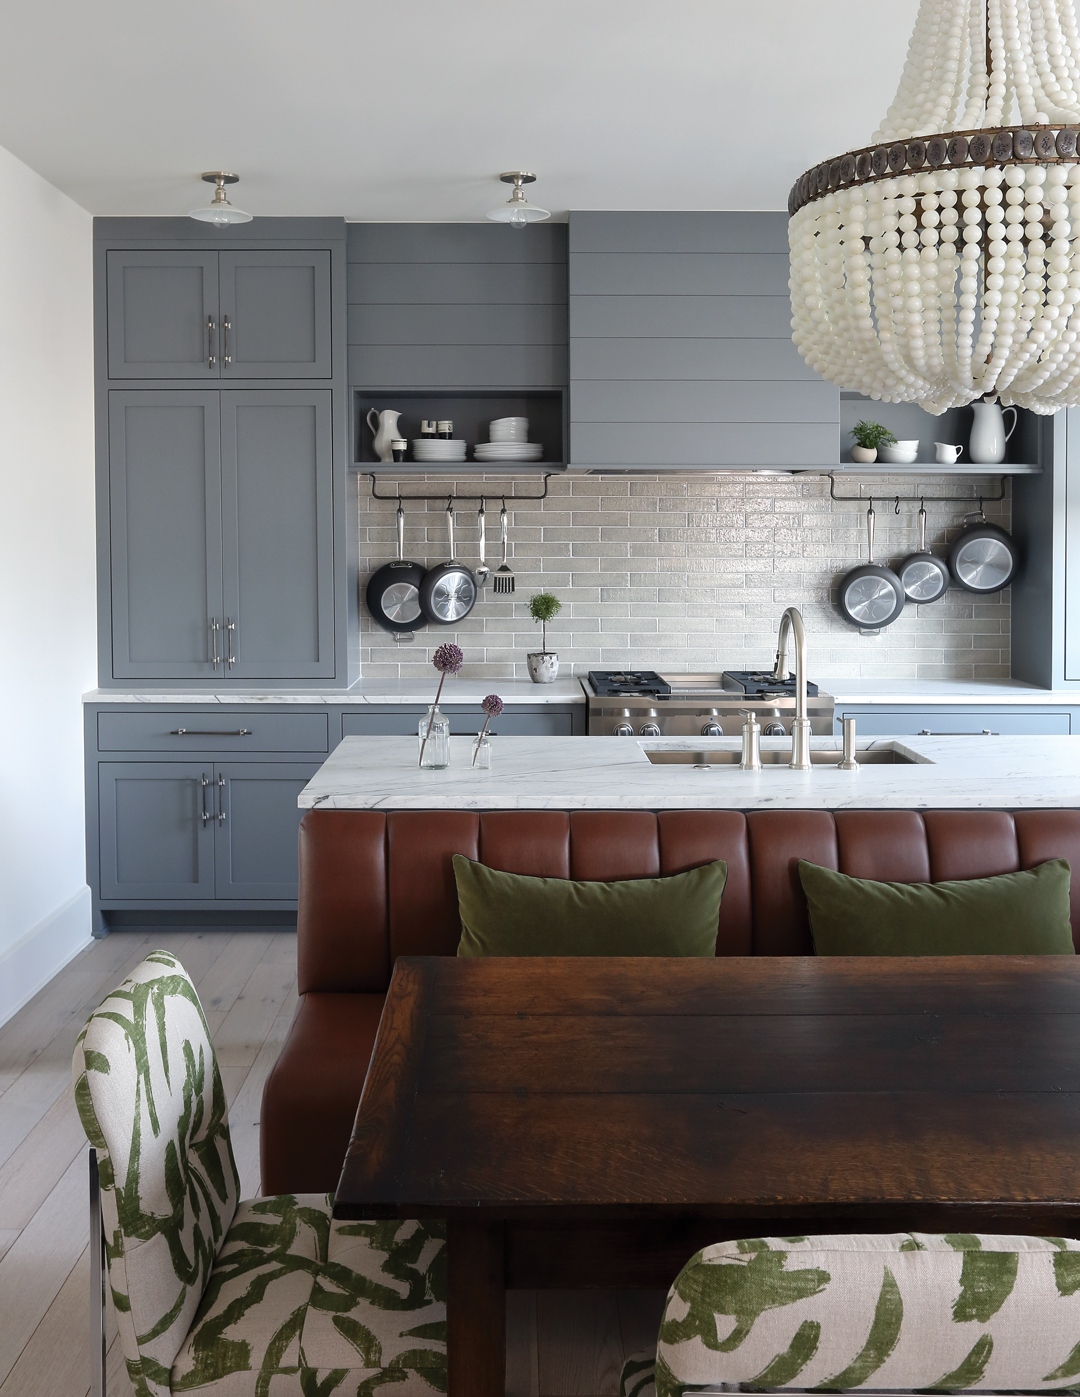 Room Envy: This cozy kitchen moves the refrigerator and ...